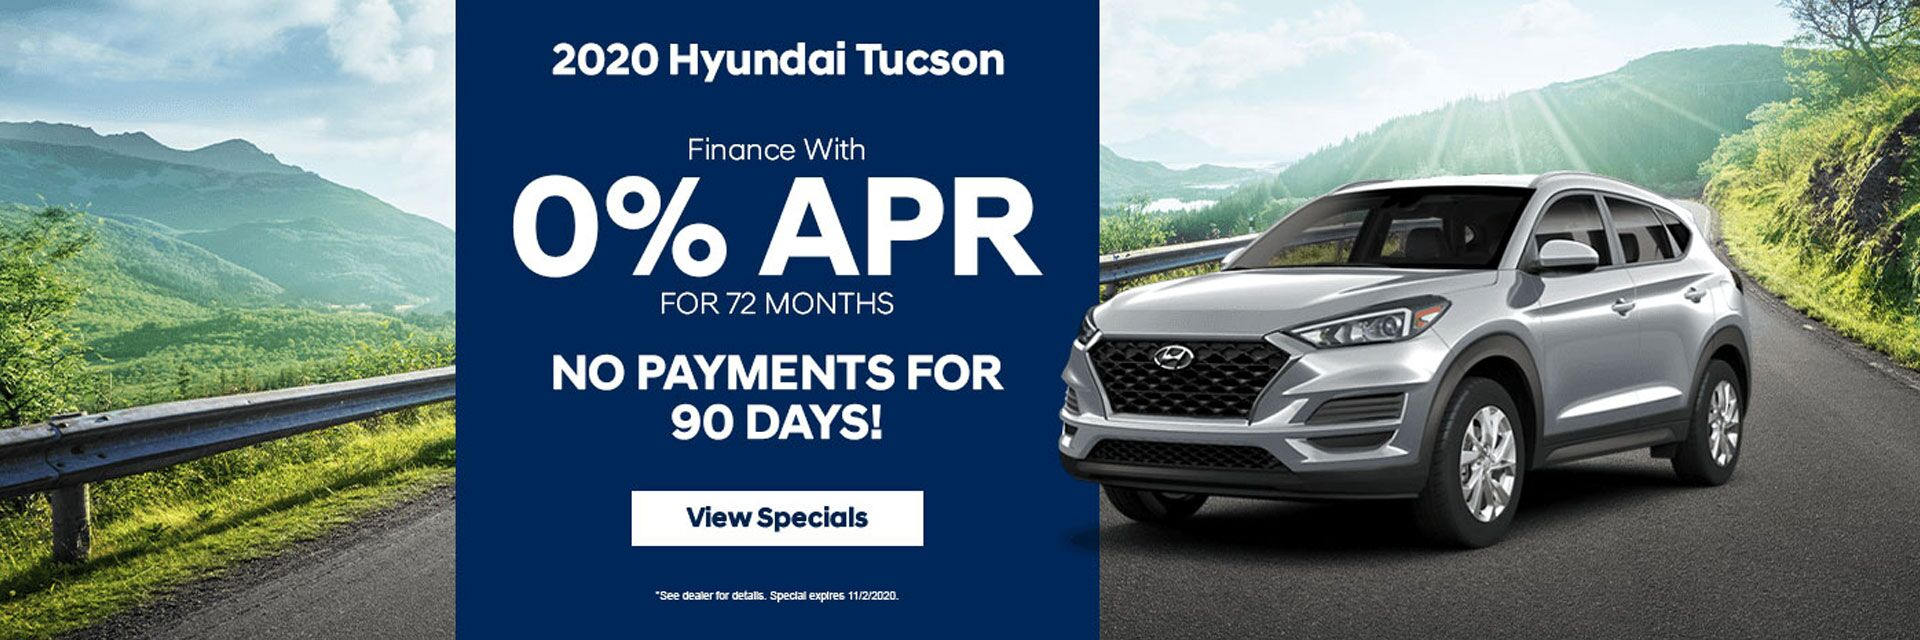 2020 Hyundai Tucson Finance